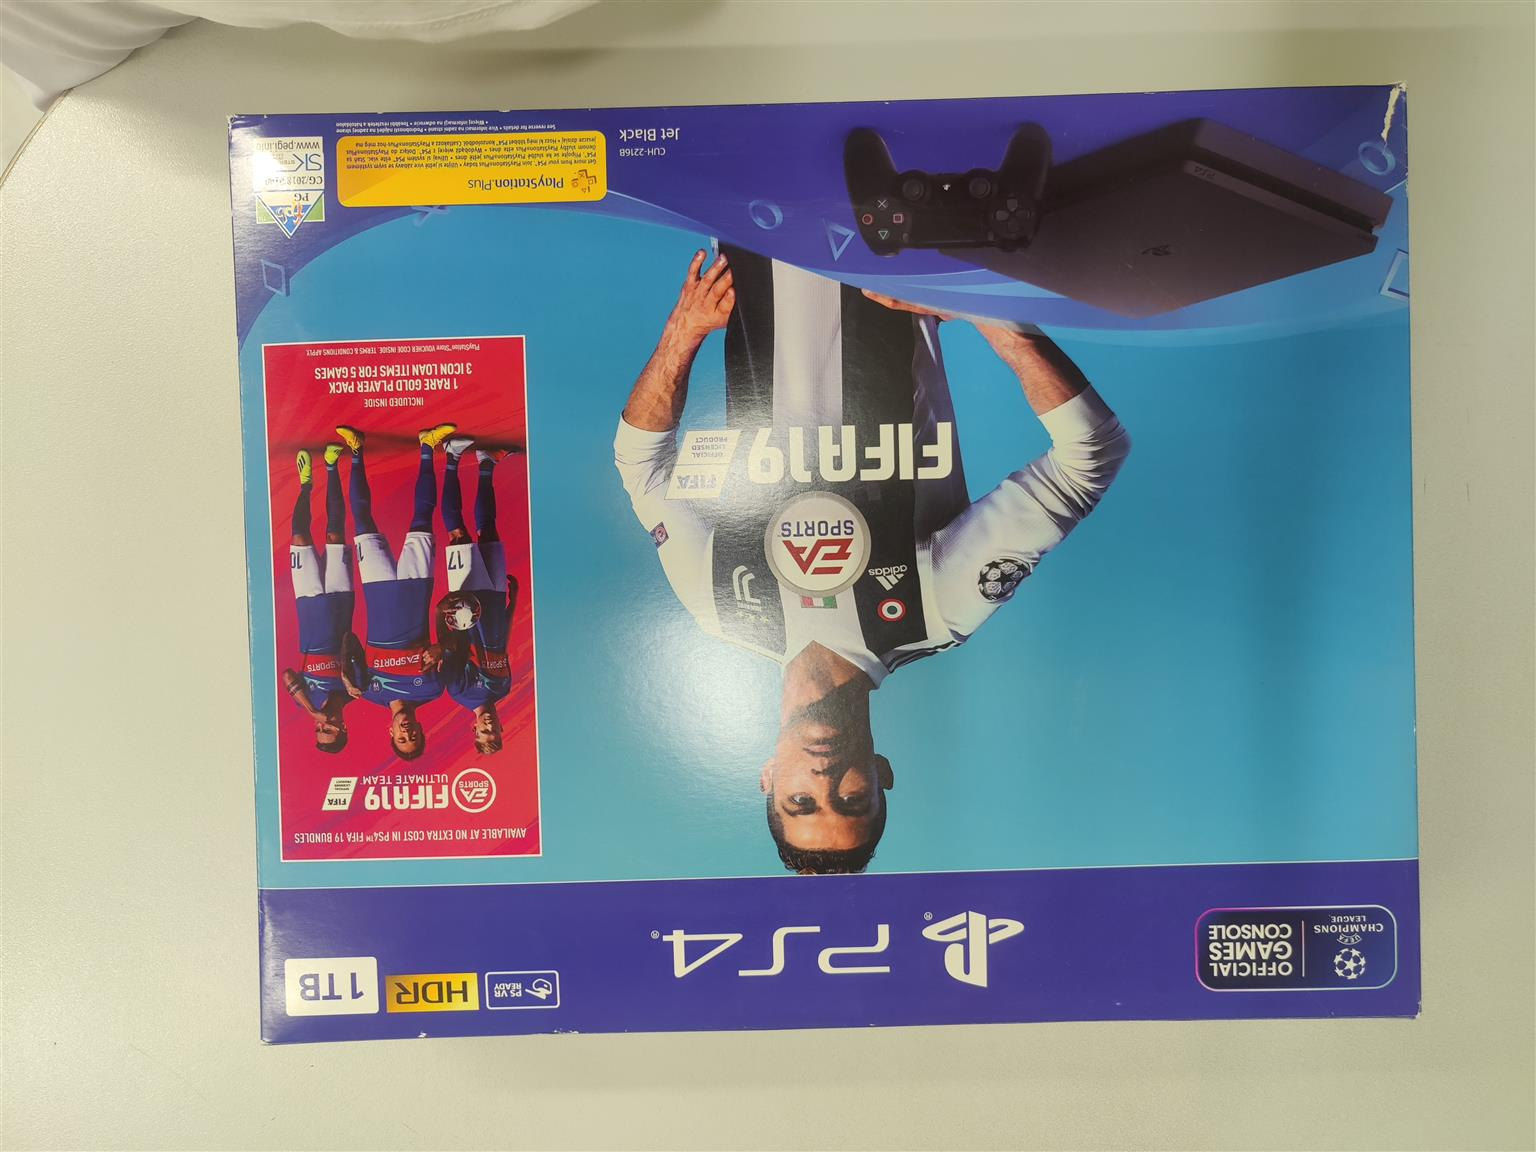 Ps4 1tb slim fifa 19 bundle brand new in the box